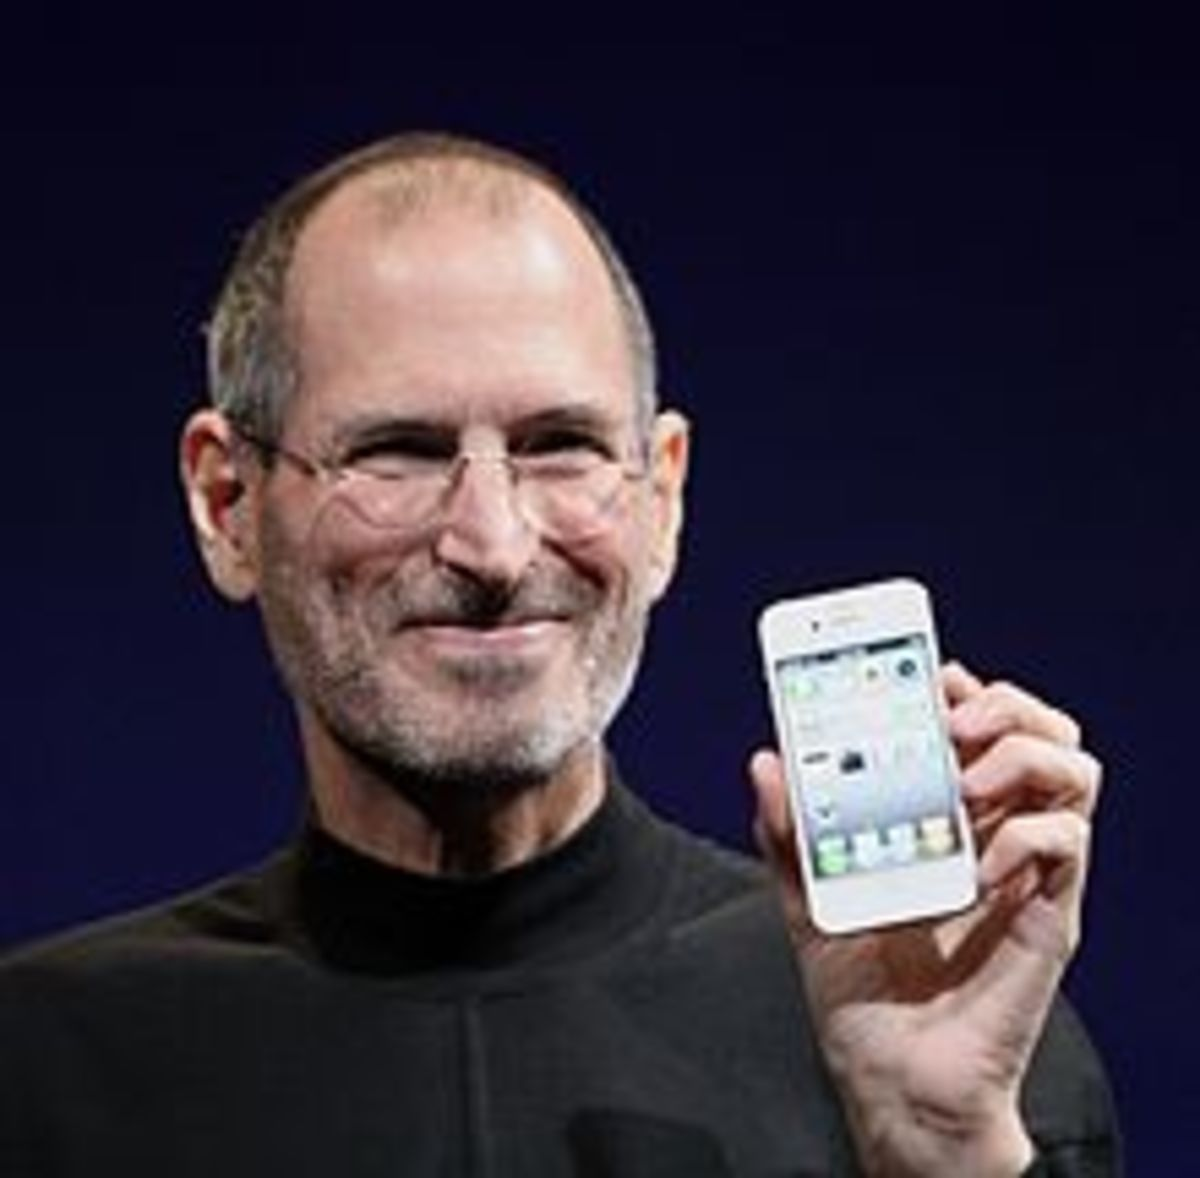 The Late Steve Jobs founder of apple computers was highly influenced by zen and Eastern philosophy. His designs reflect  East-West  aesthetic elements where essence meets form. Intuitive, uncluttered yet complex and visually peasing.